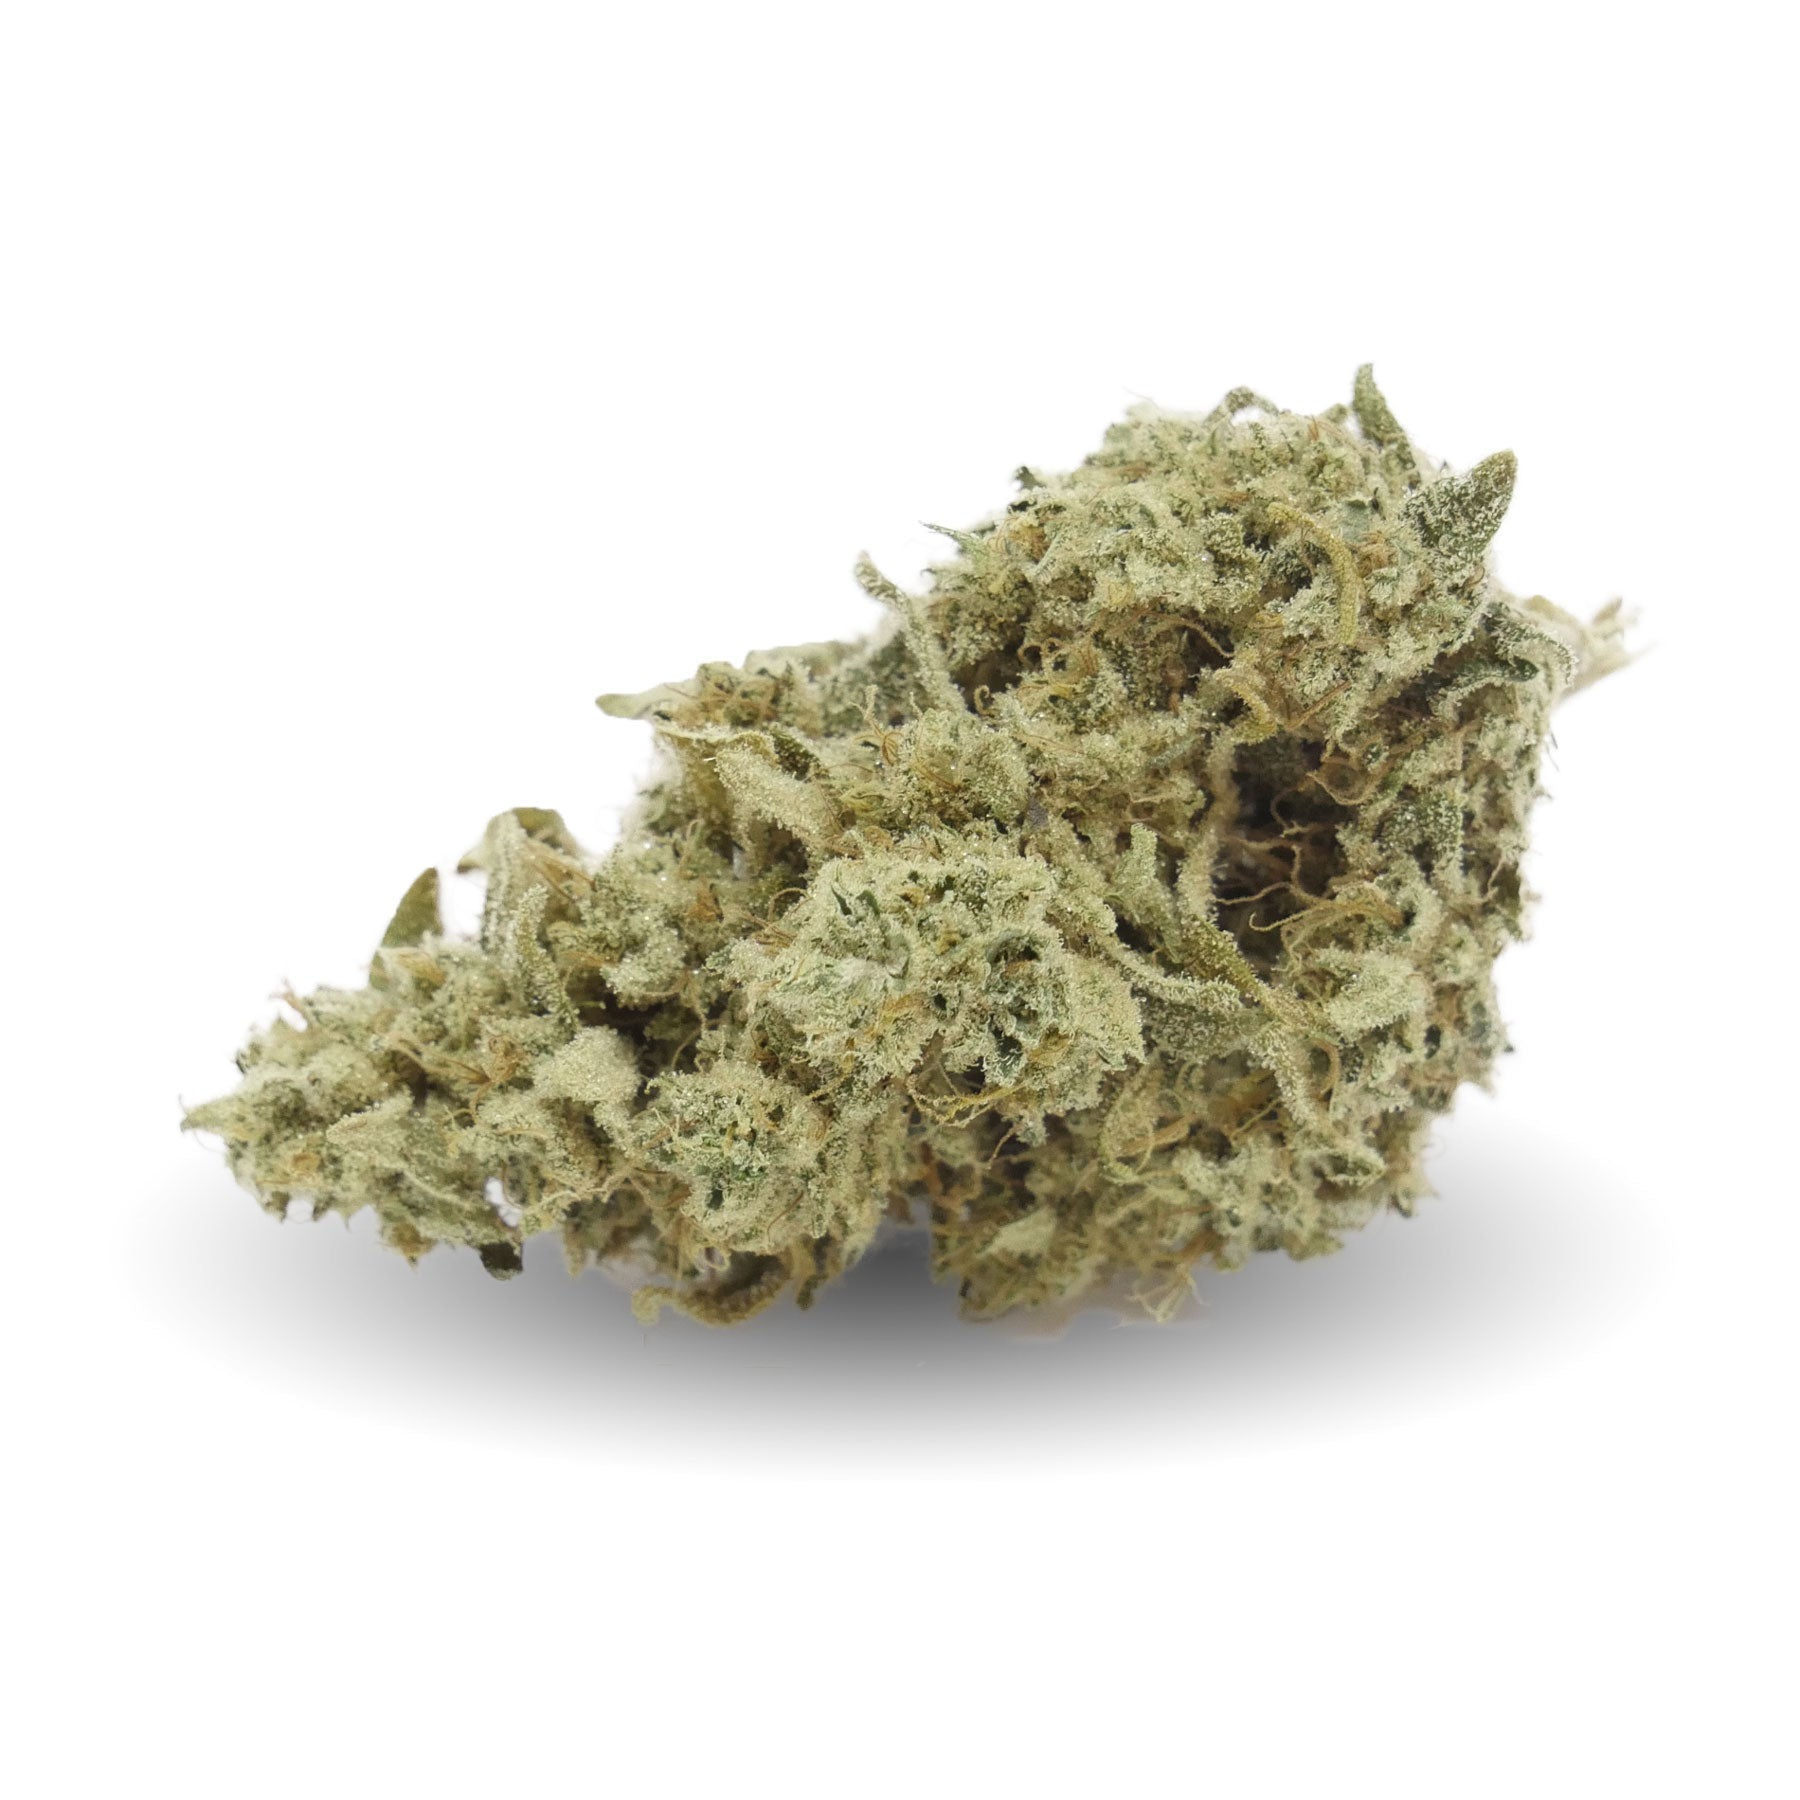 Black-CBD Cannabis-EasyWeed-Swiss CBD Shop-uWeed